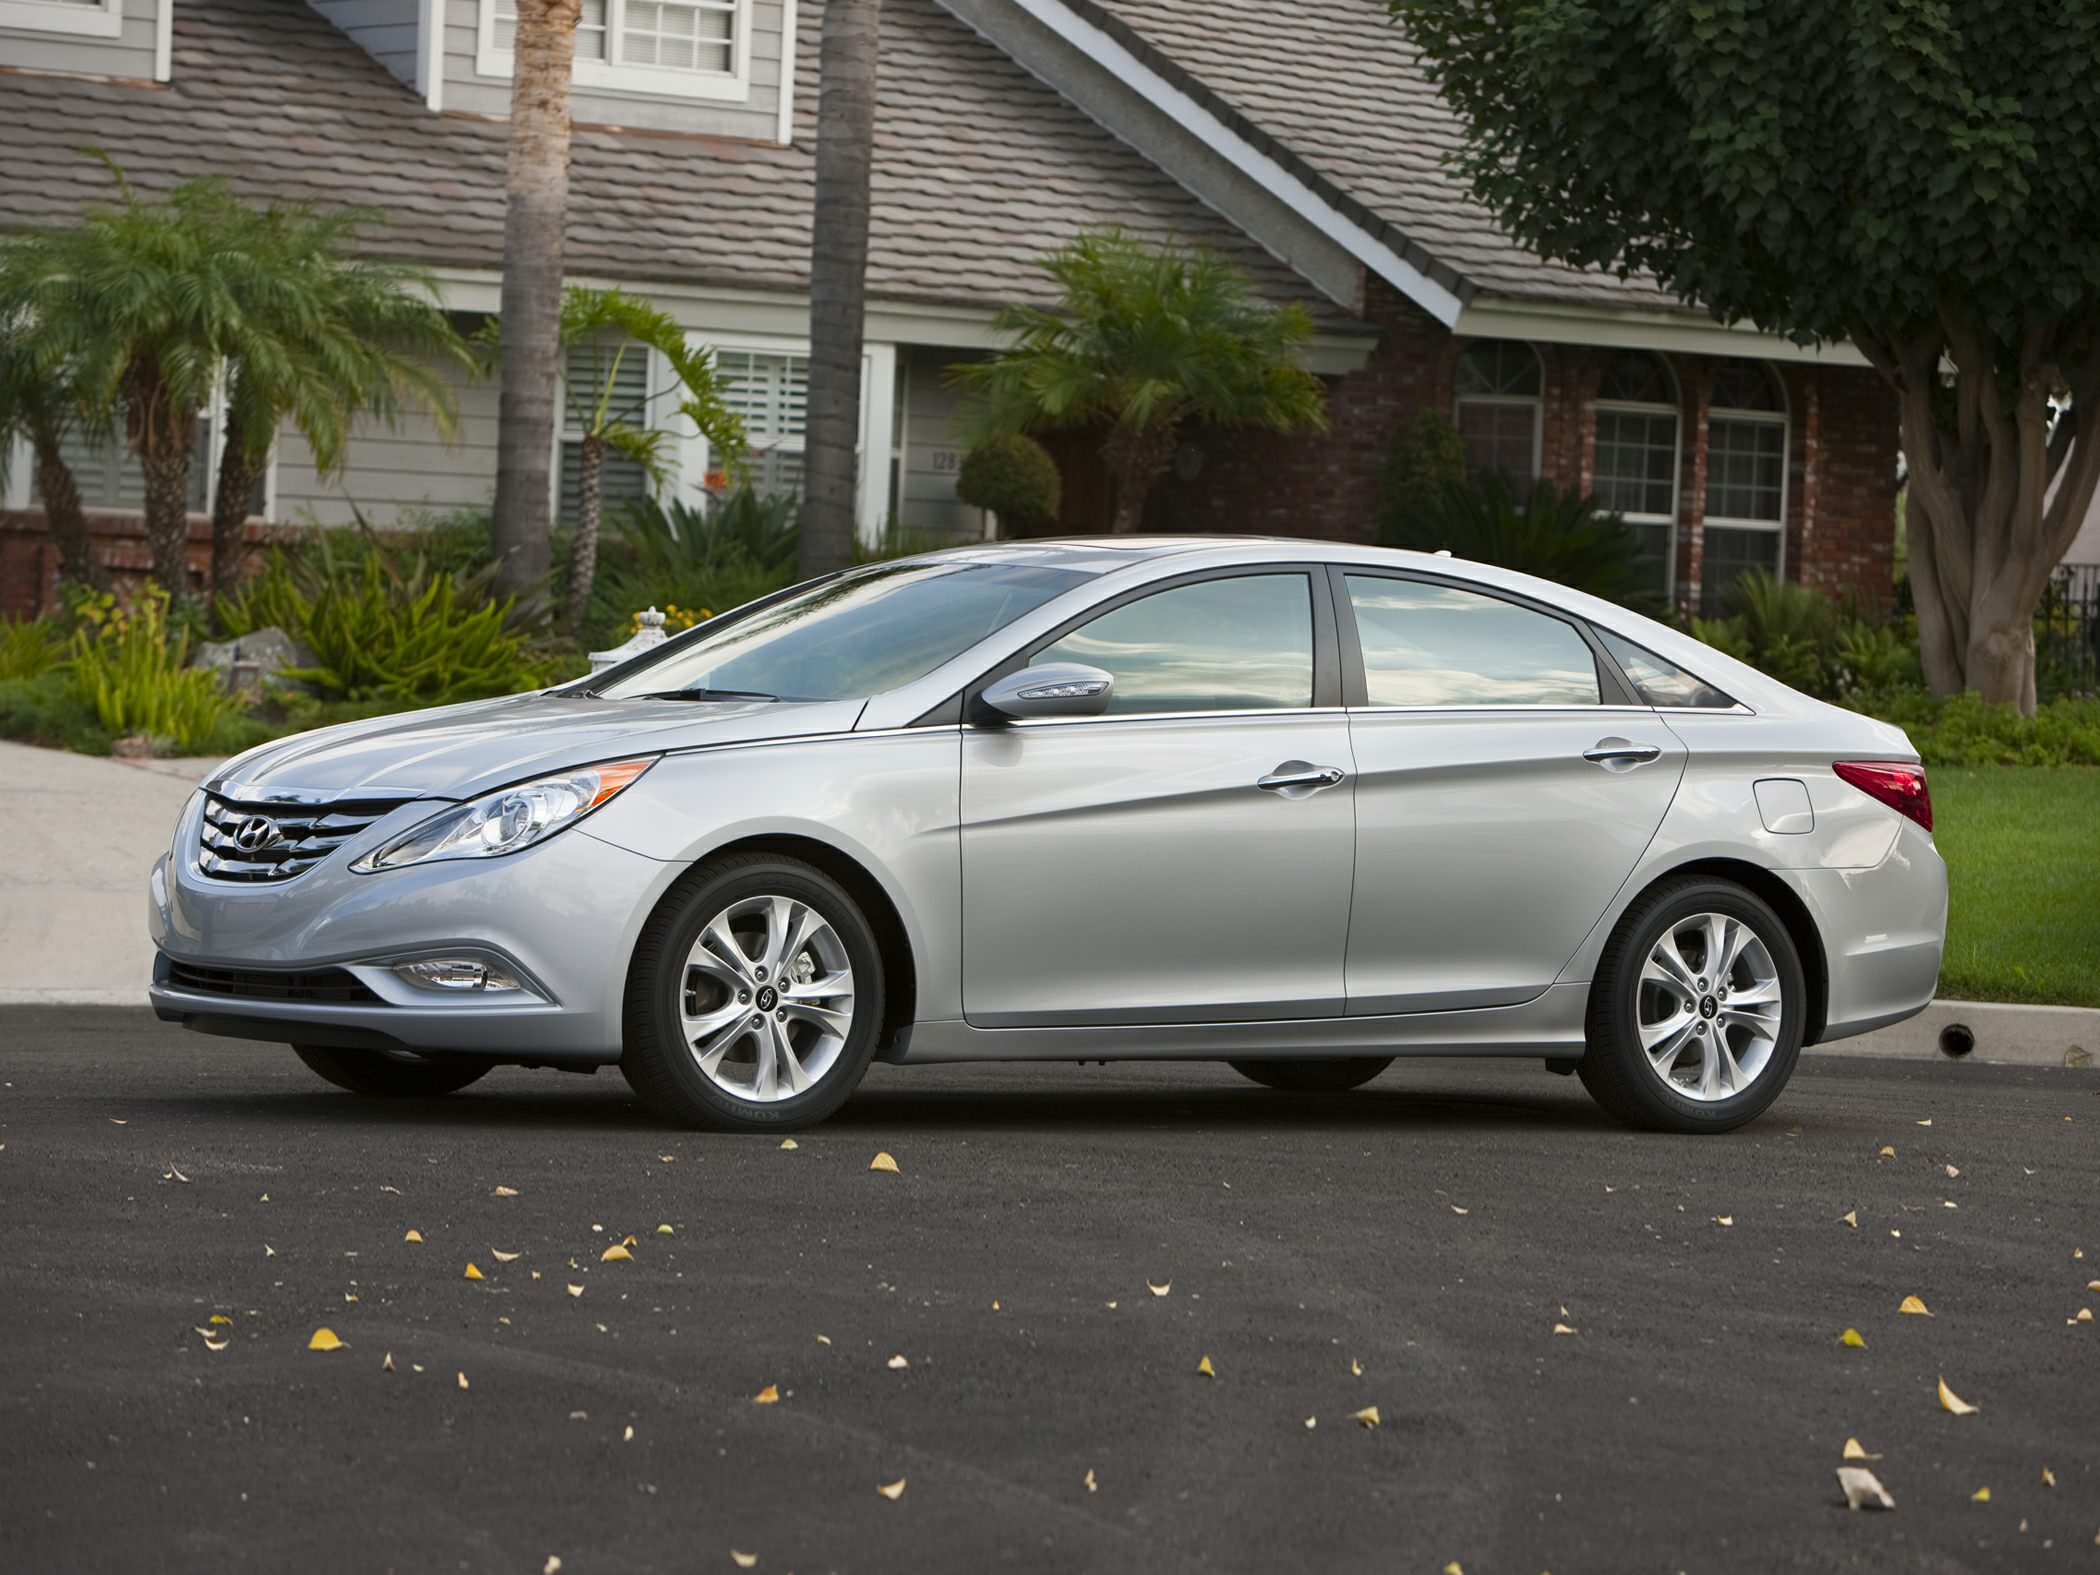 2012 HYUNDAI SONATA GLS